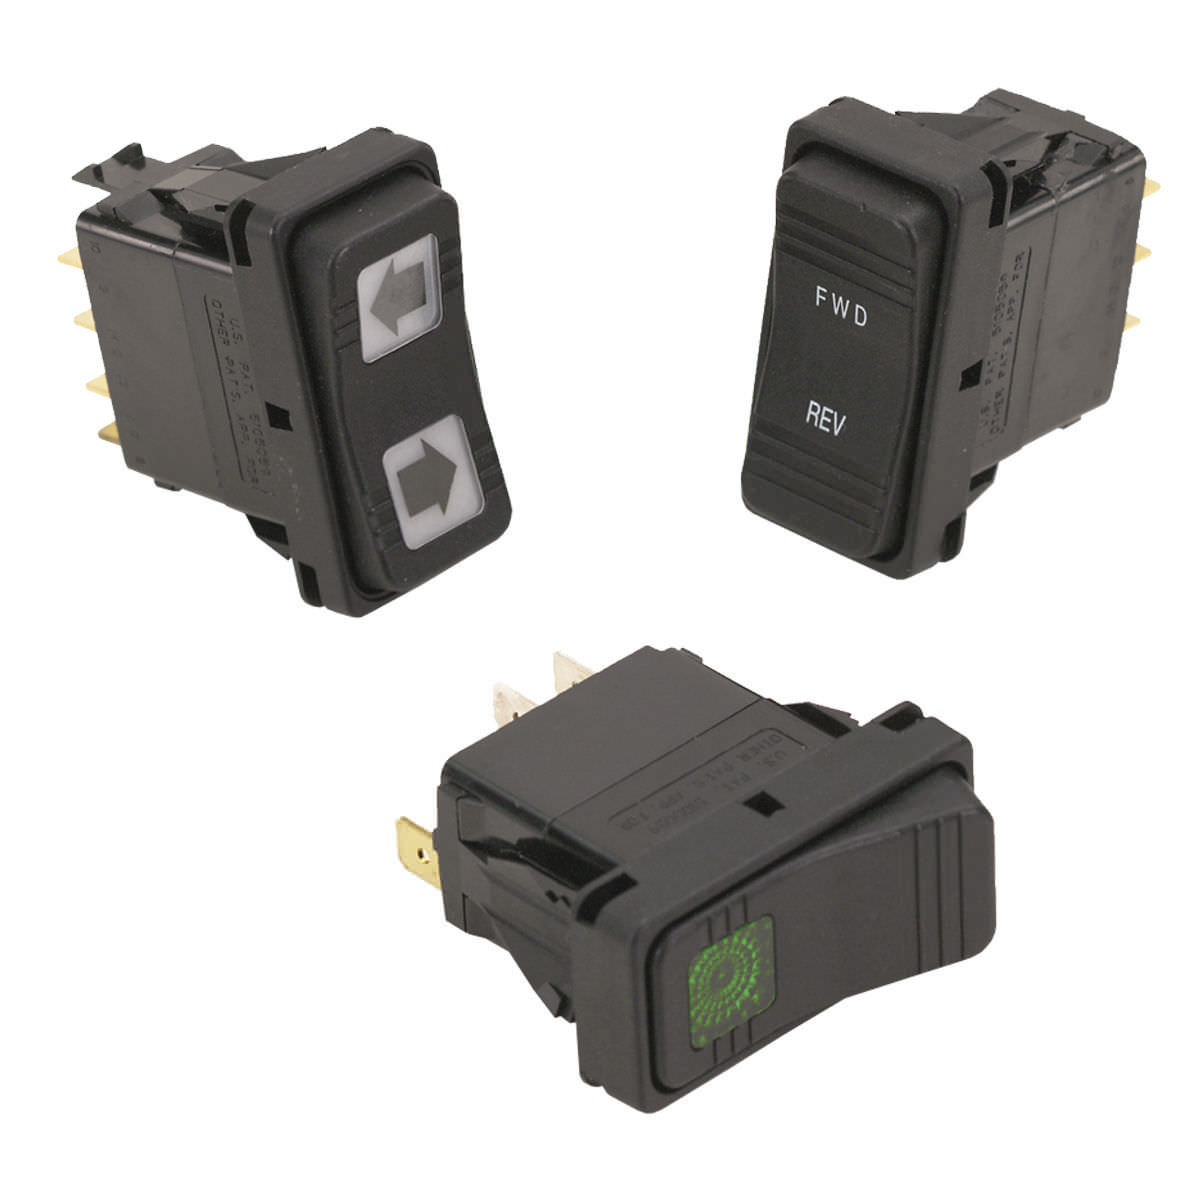 Rocker Switch Single Pole Bipolar Illuminated V Series How To Wire Switches In Parallel Electrical Technology Contura X Xi Xii